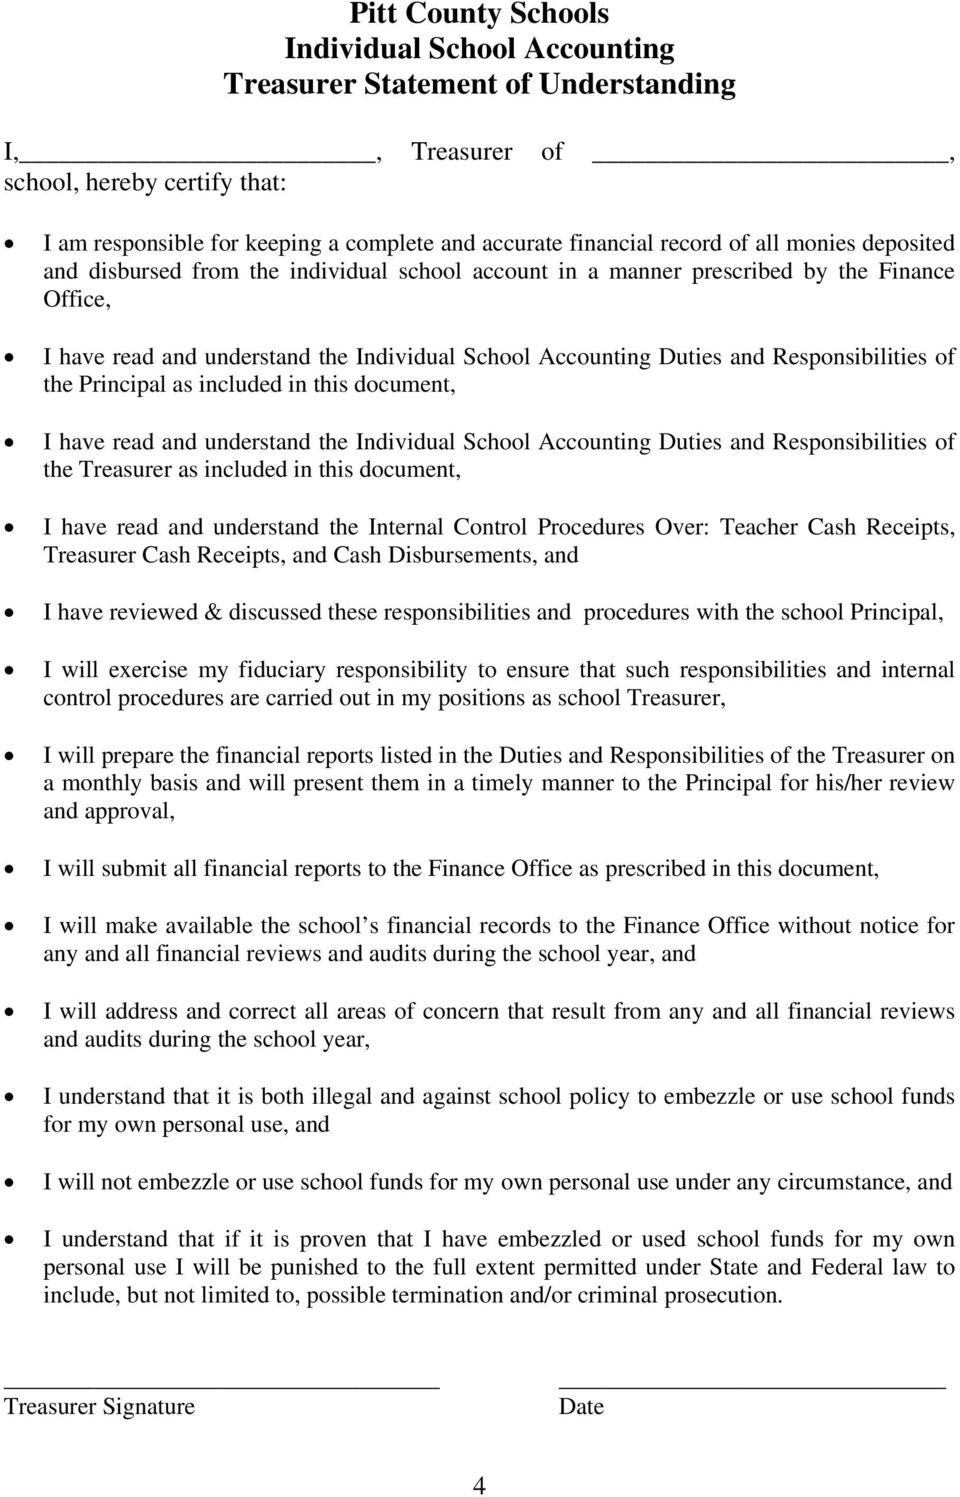 Principal as included in this document, I have read and understand the Individual School Accounting Duties and Responsibilities of the Treasurer as included in this document, I have read and